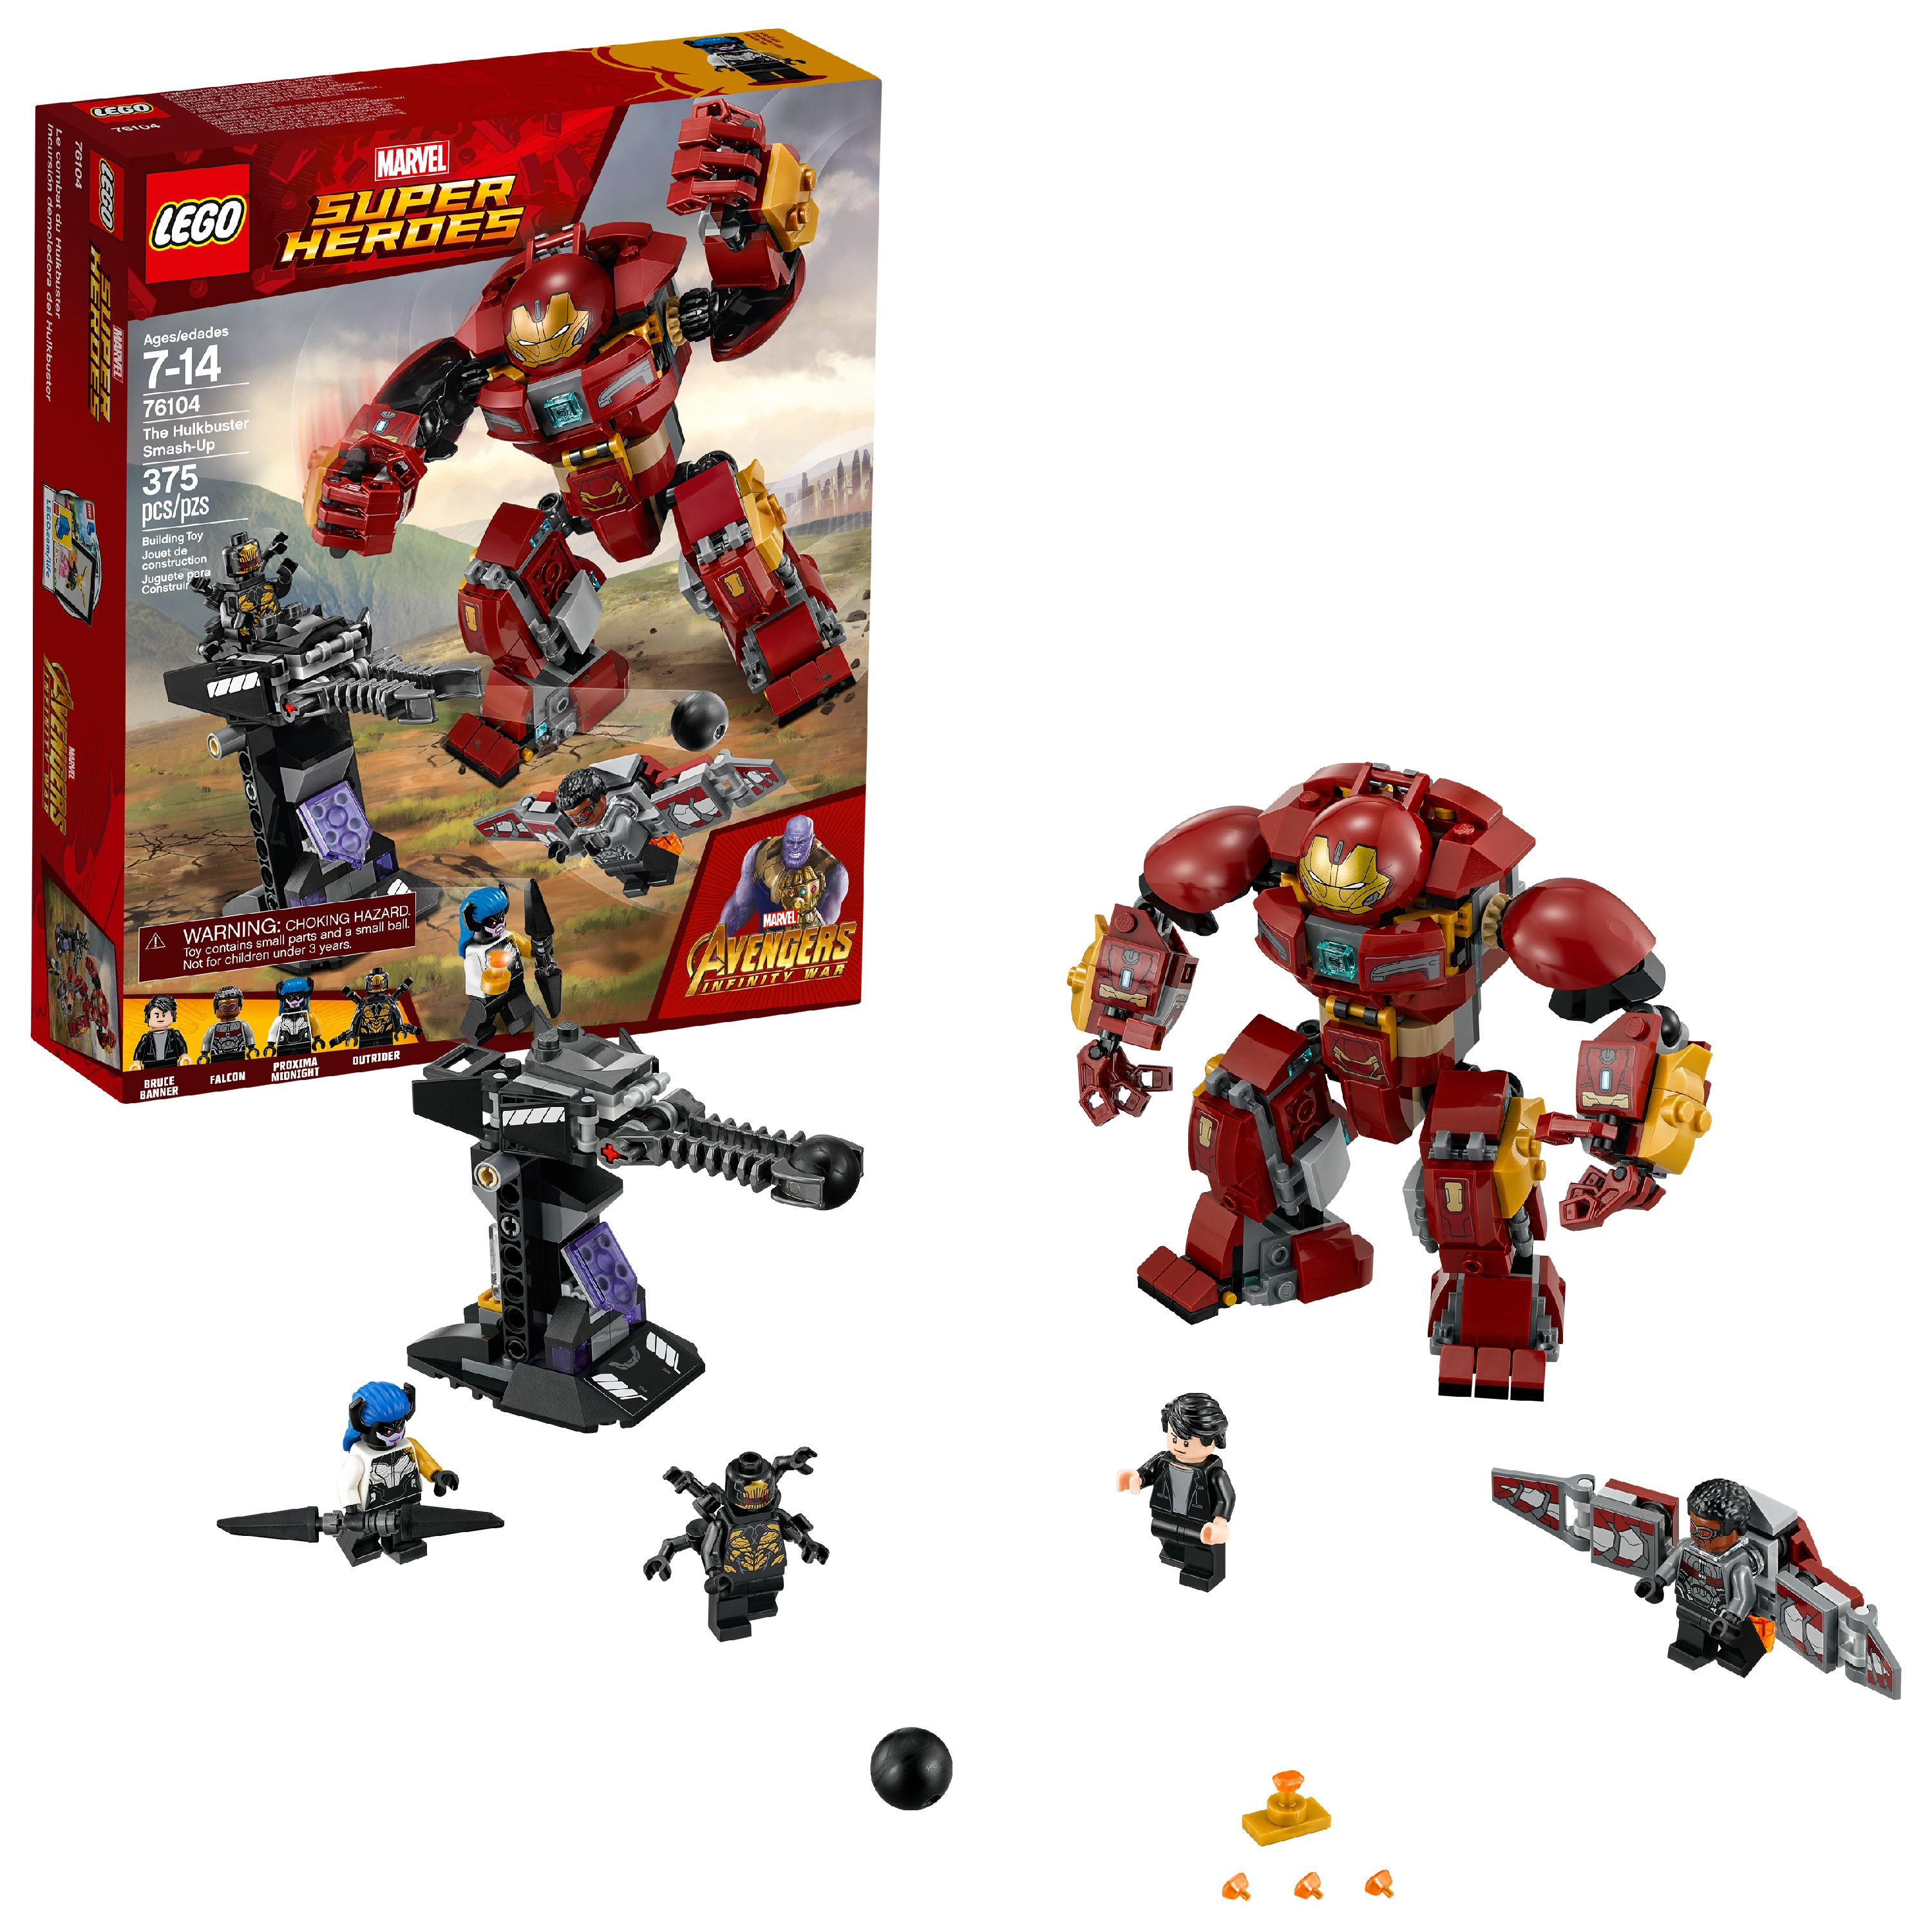 LEGO Super Heroes Marvel The Hulkbuster Smash-Up 76104